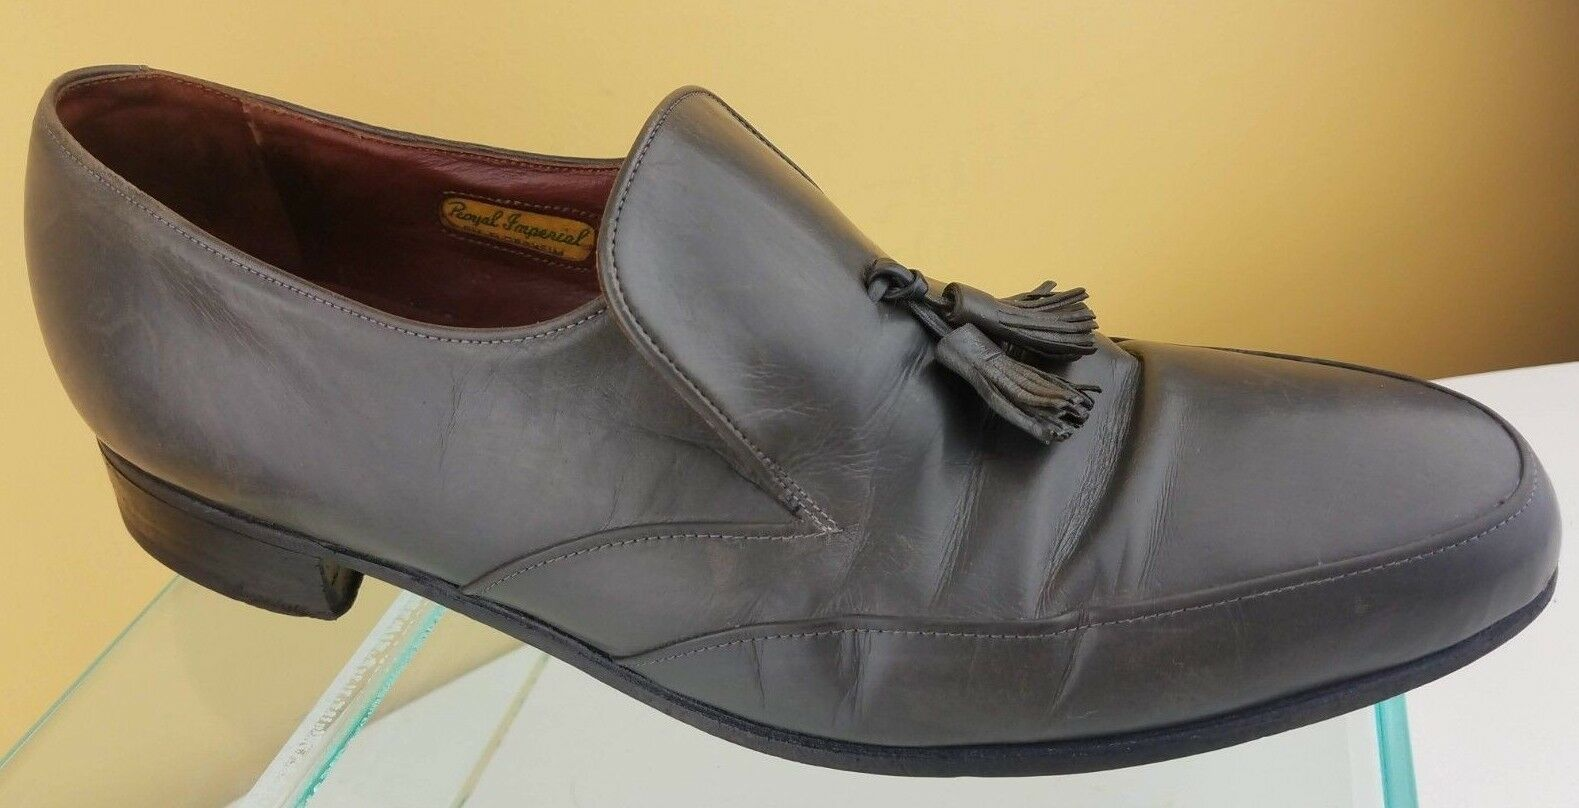 Florsheim Royal Loafer Imperial Men's Gray Leather Apron Toe Tassel Loafer Royal Shoes Sz 9D 0d5f88